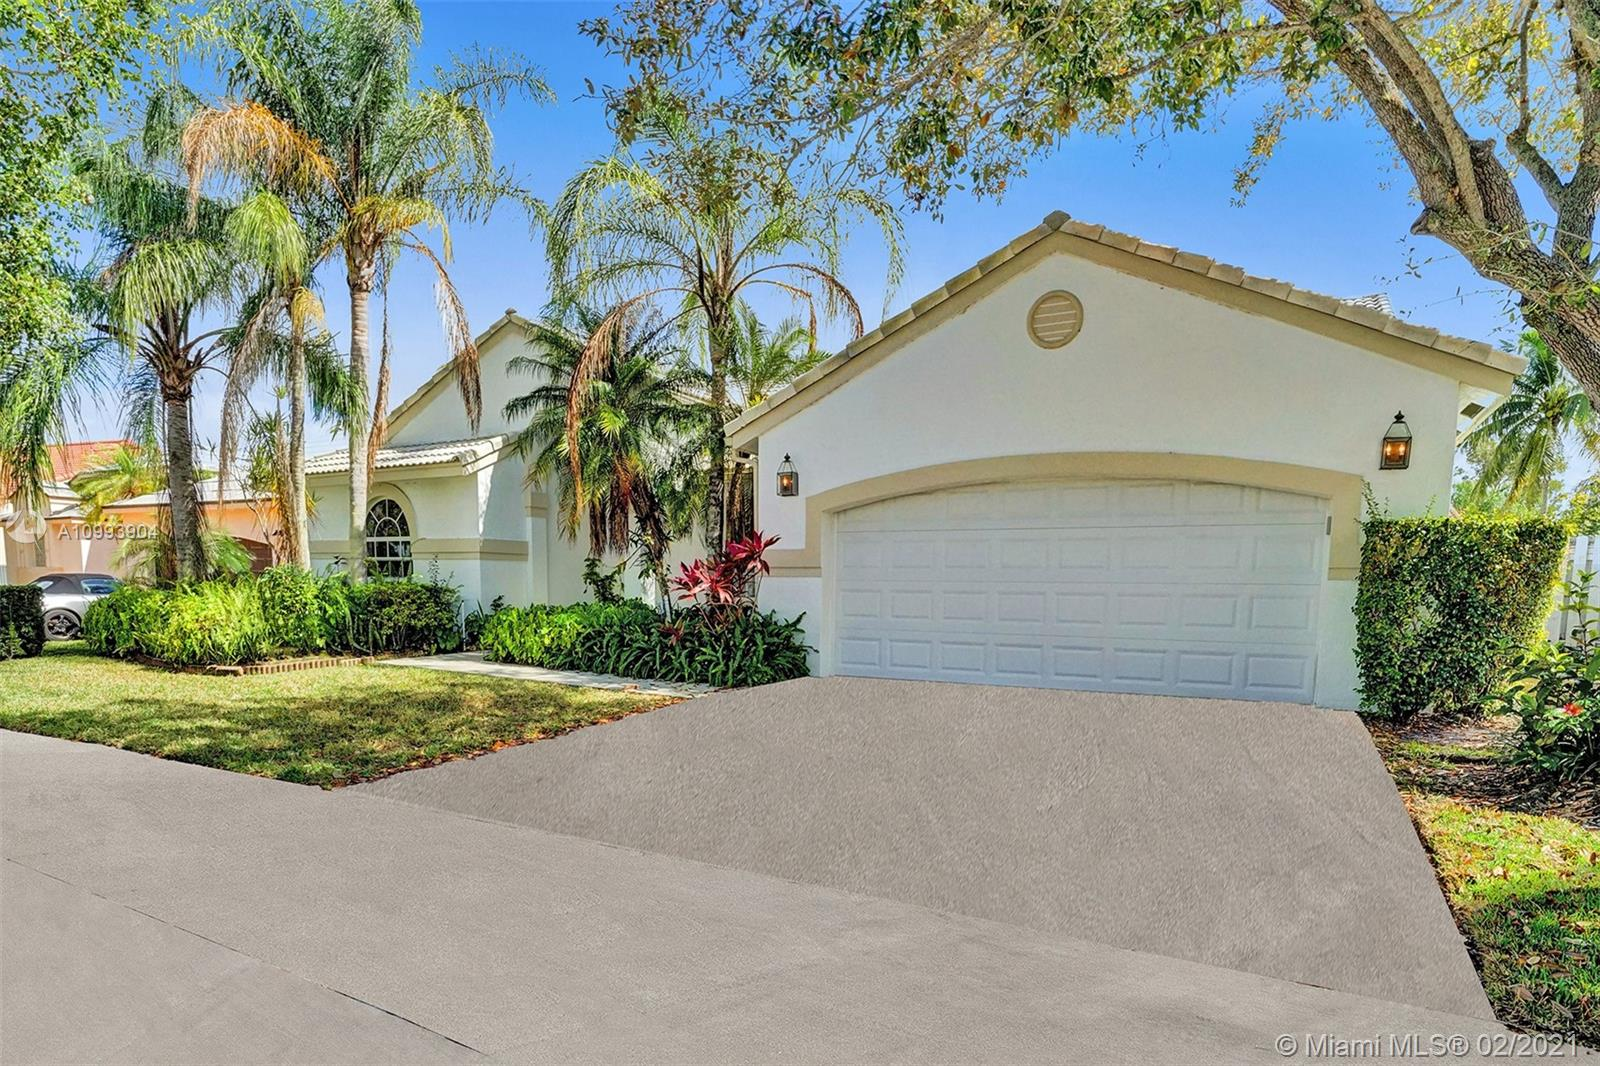 "Short sale subject to 3rd party approval. Streamlined short sale. Great opportunity to live in The Lakes! Home has updated kitchen with stainless steel appliances and granite countertops. Updated  24"" x 24"" tile floors in social areas and wood laminate in all 4 bedrooms. Split bedroom plan. Remodeled master bath and powder room. Huge backyard, fully fenced and room for a pool! Hurricane panels for all openings and impact garage door.  Zoned for great Weston schools including Cypress Bay H.S. Community is guard gated 24/7, has  a community pool & tot lot. Close to highways & shopping. Publix & CVS are a mile away. Roof is original. Home is priced to sell taking this into consideration. Please no low ball offers. SEE ATTACHMENTS FOR SHORT SALE ADDENDUM TO CONTRACT AND TITLE COMPANY INFO."